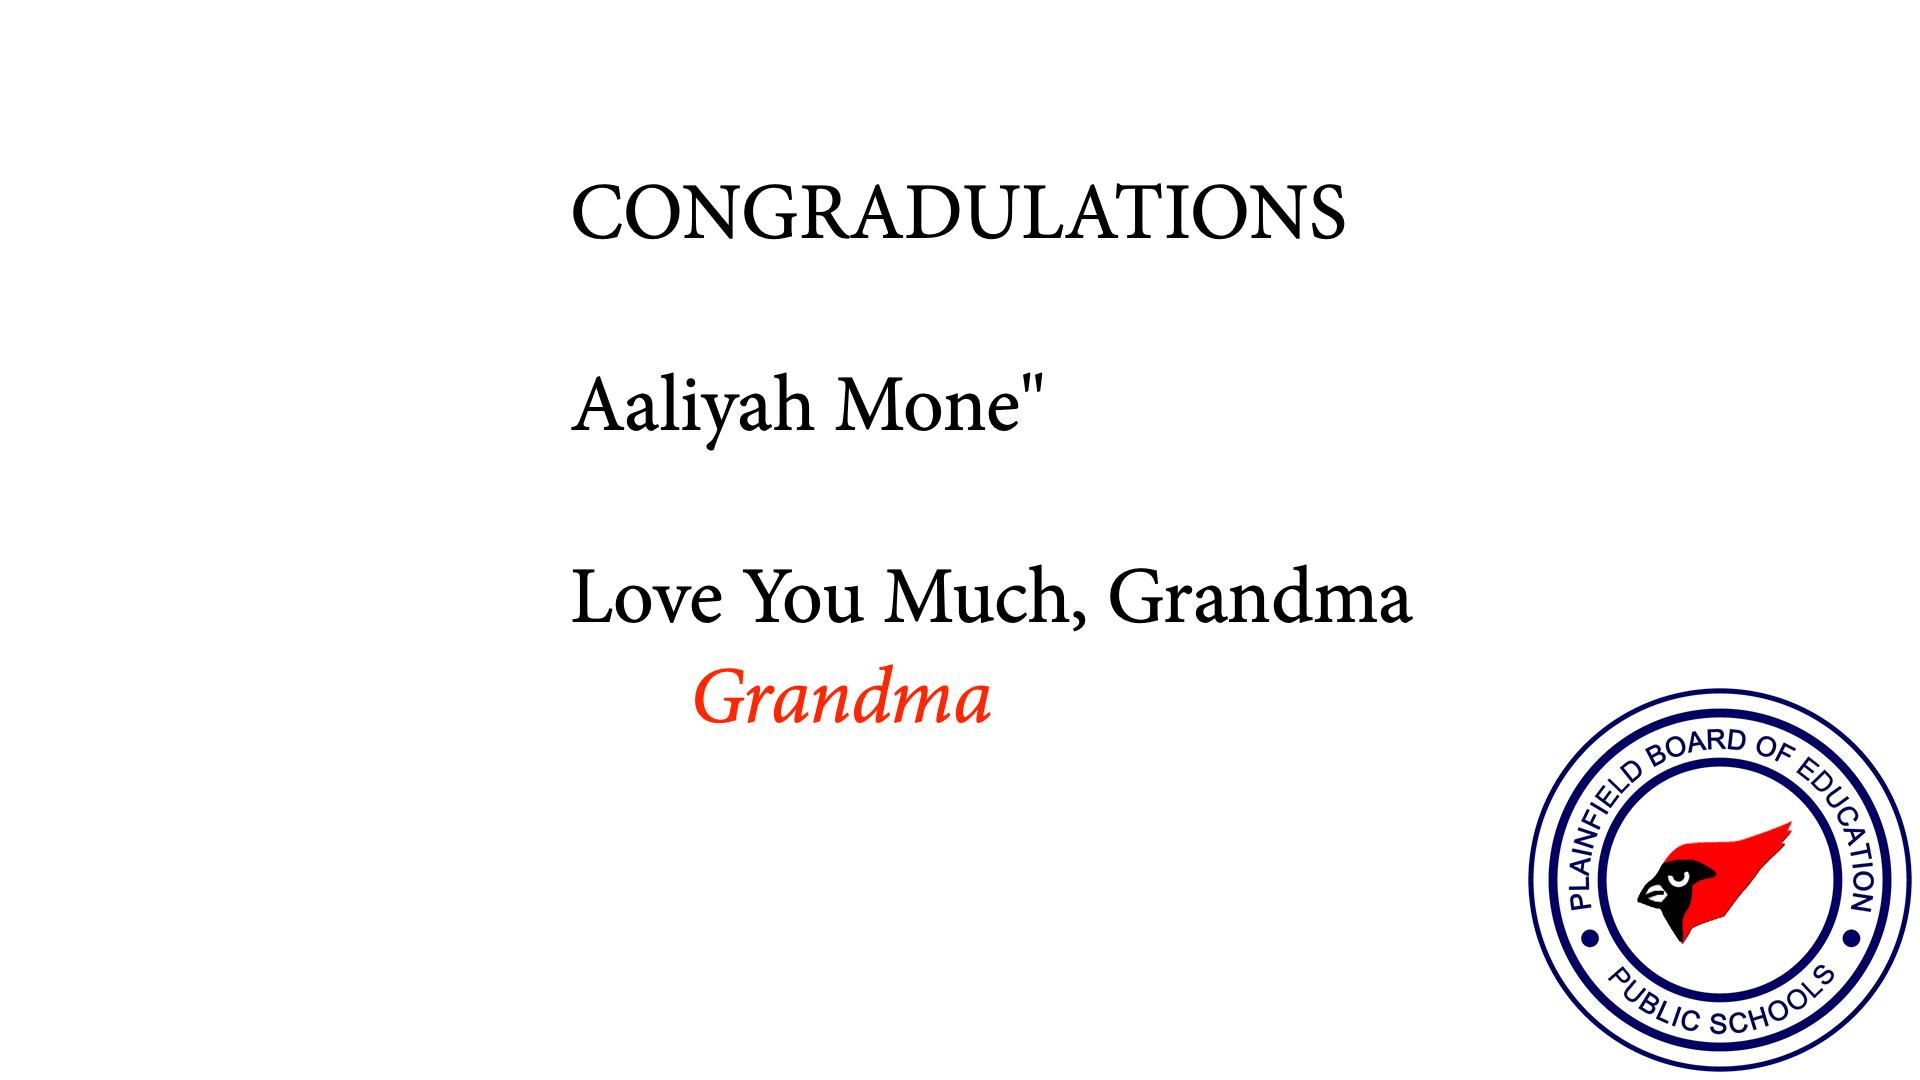 tbi_aaliyah-mone-townsend_547.png